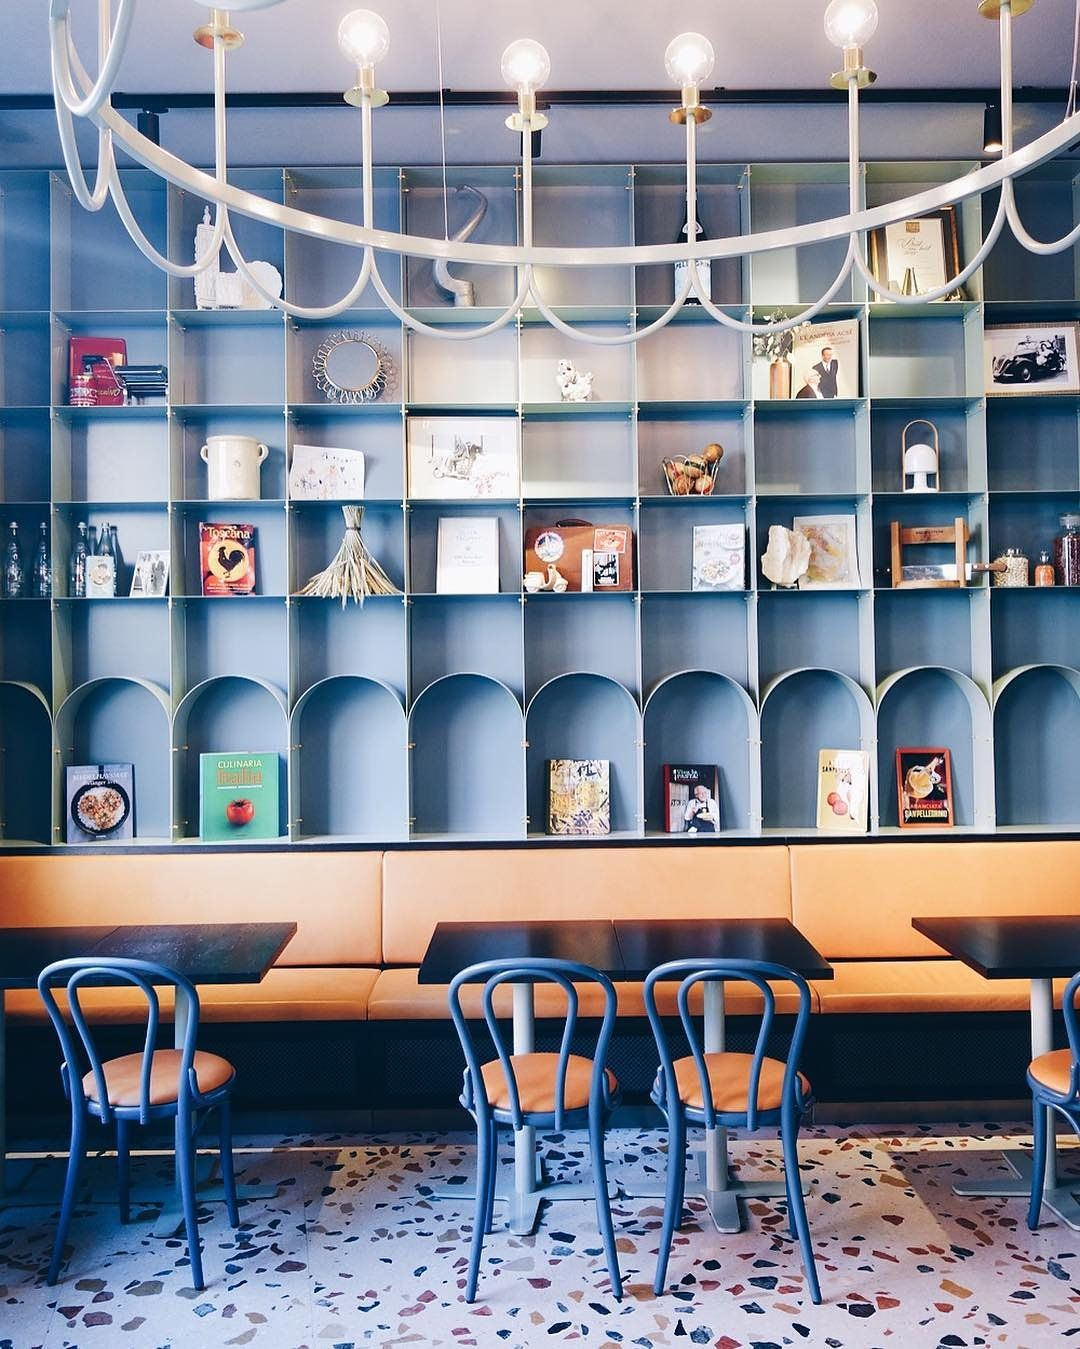 At Deli Di Luca, you can have a croissant and coffee, an aperitivo at the bar, or a three-course dinner. Not to mention the thoughtful interior—the marble bar, retro furniture, and colorful floors.